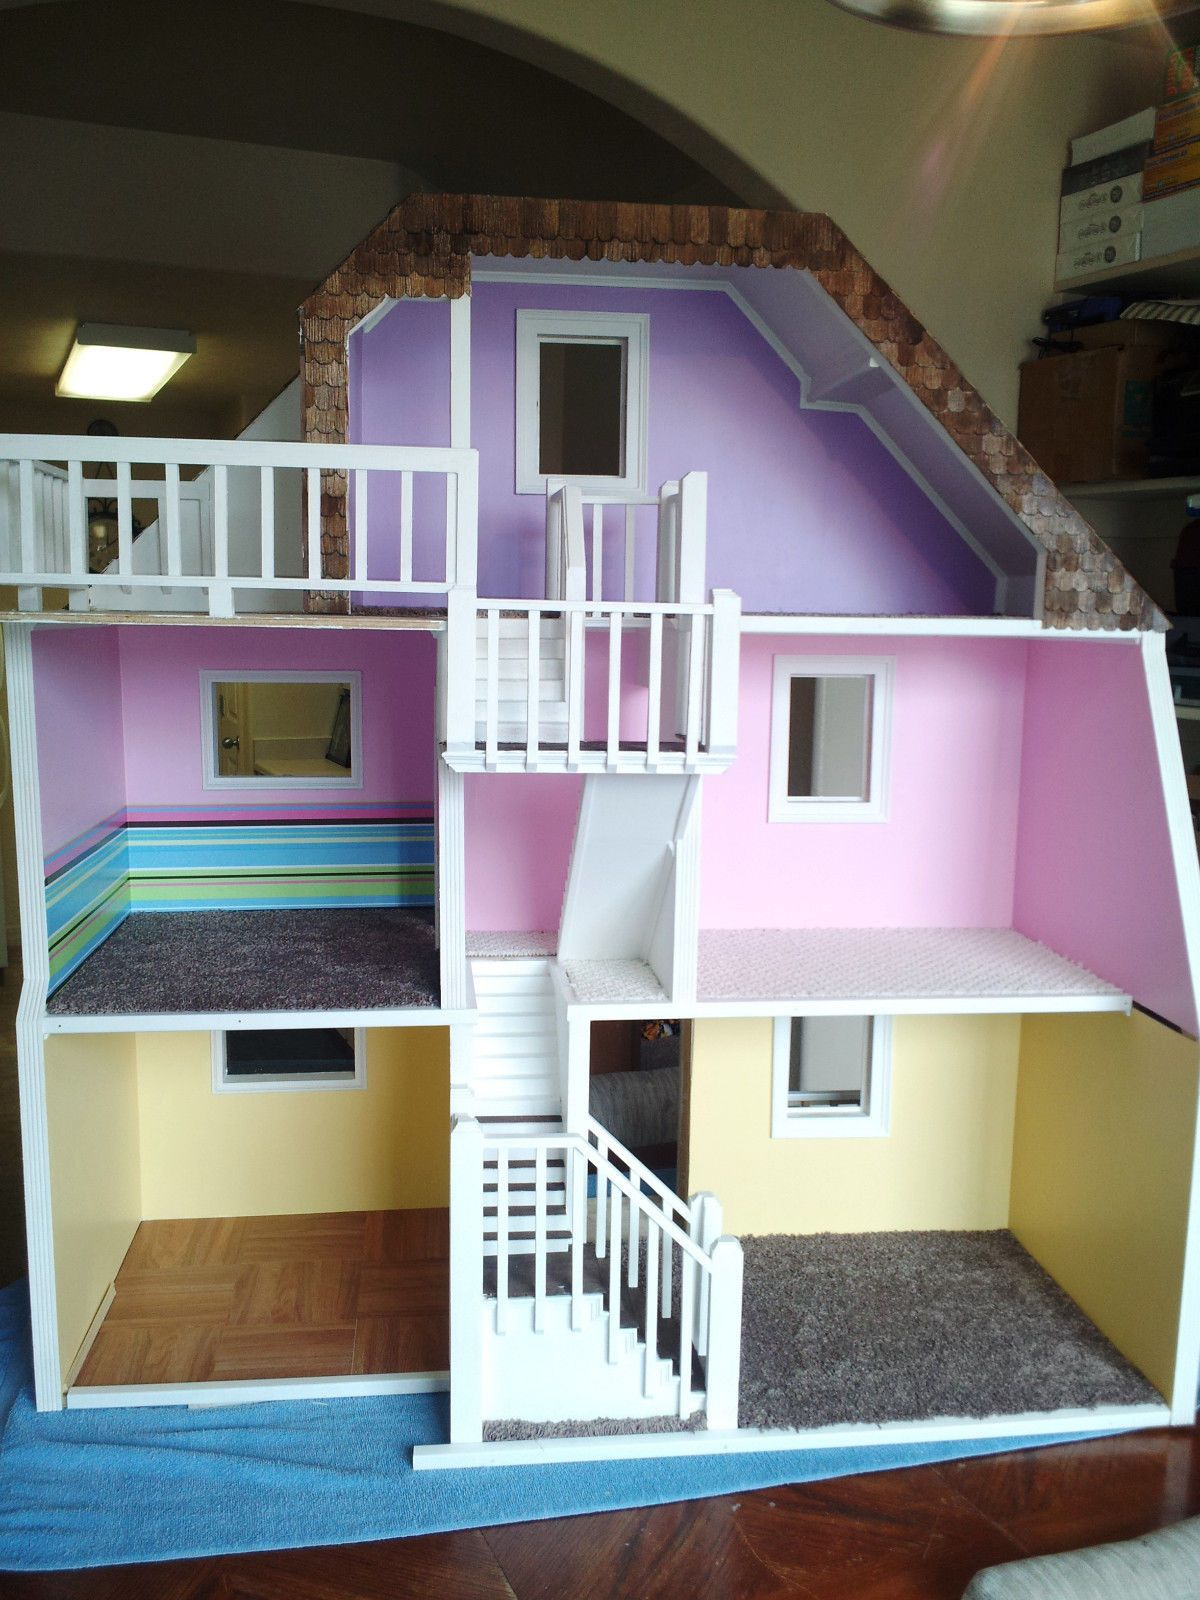 3 story custom made wood barbie doll house wooden dream How to make your dream house